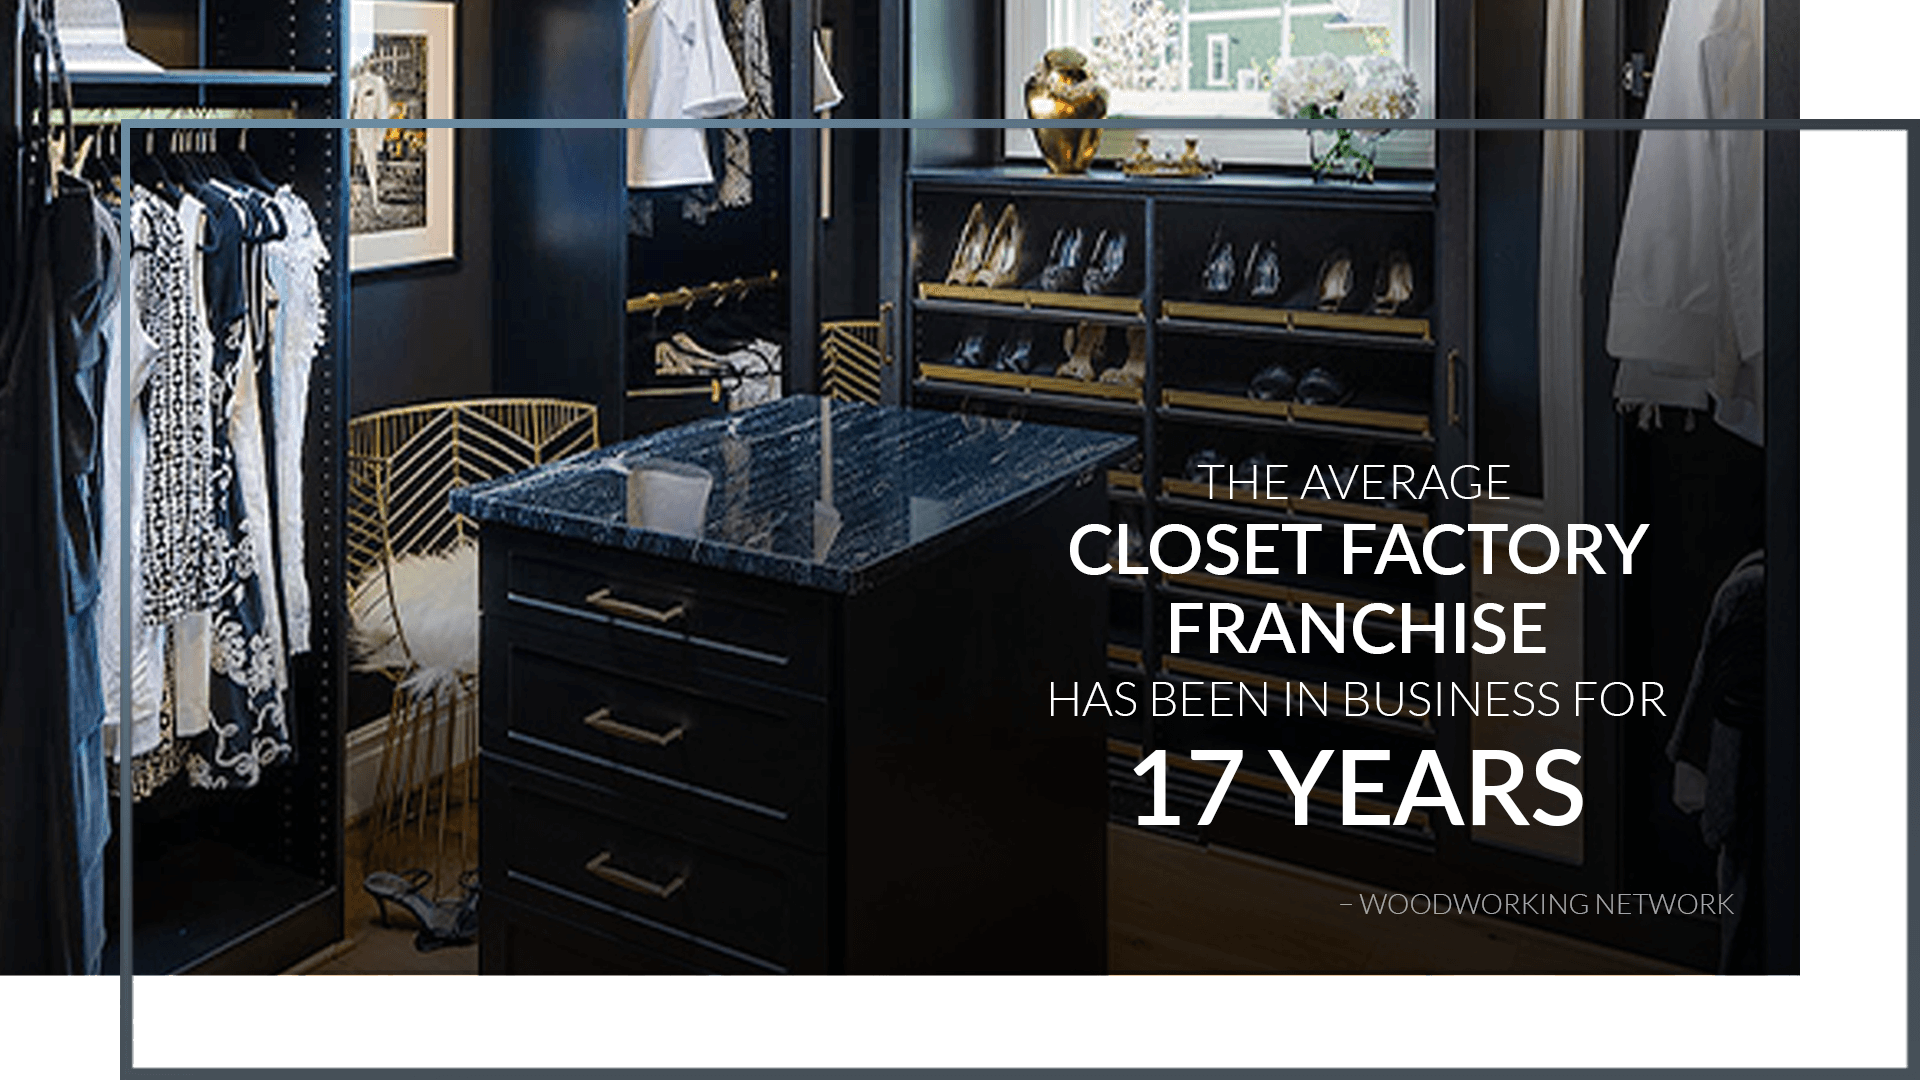 closet factory franchise for sale